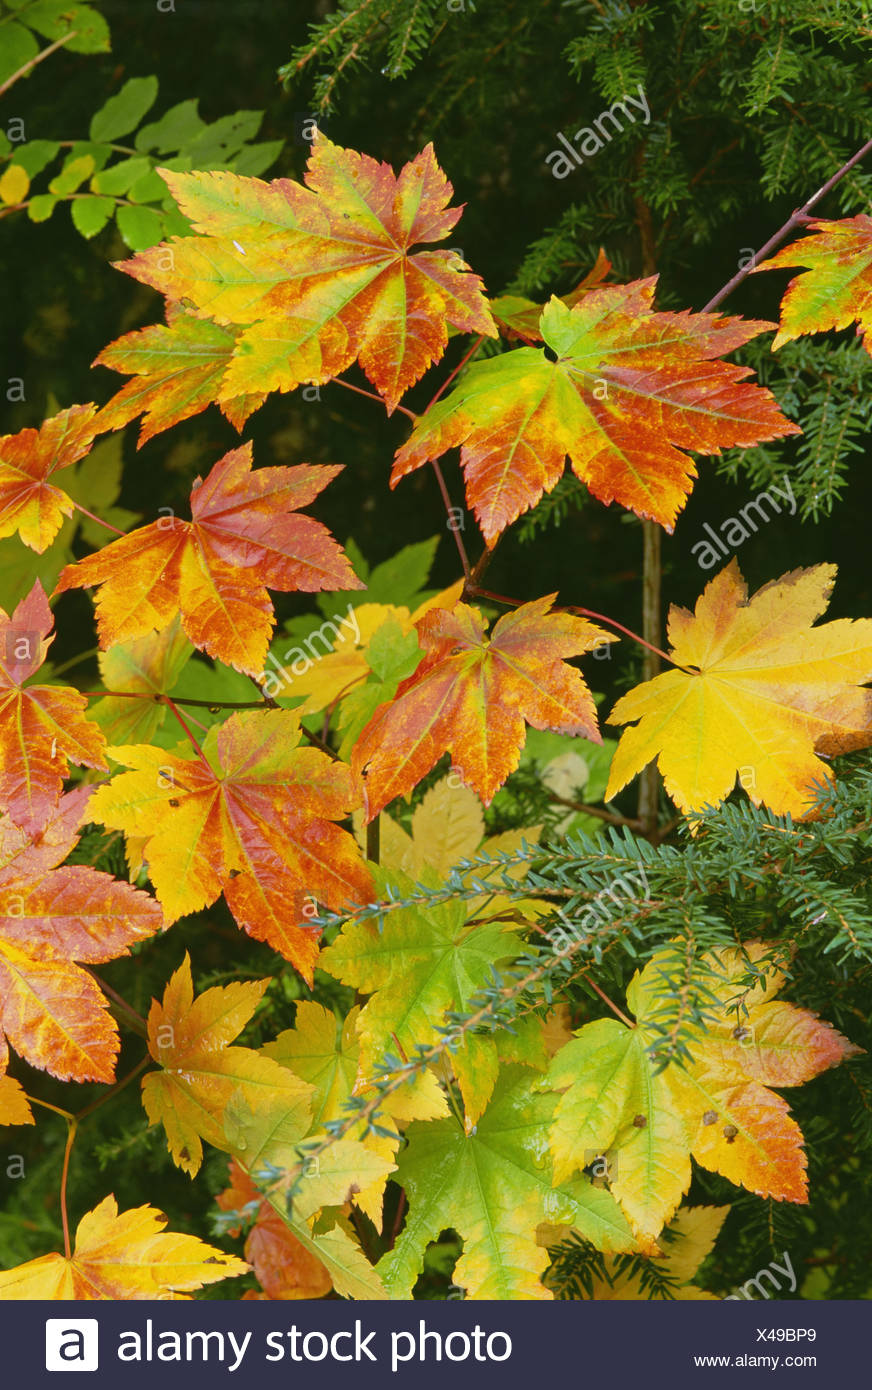 Autumn vine maple leaves, turning from green through gold to red in the autumn. Stock Photo